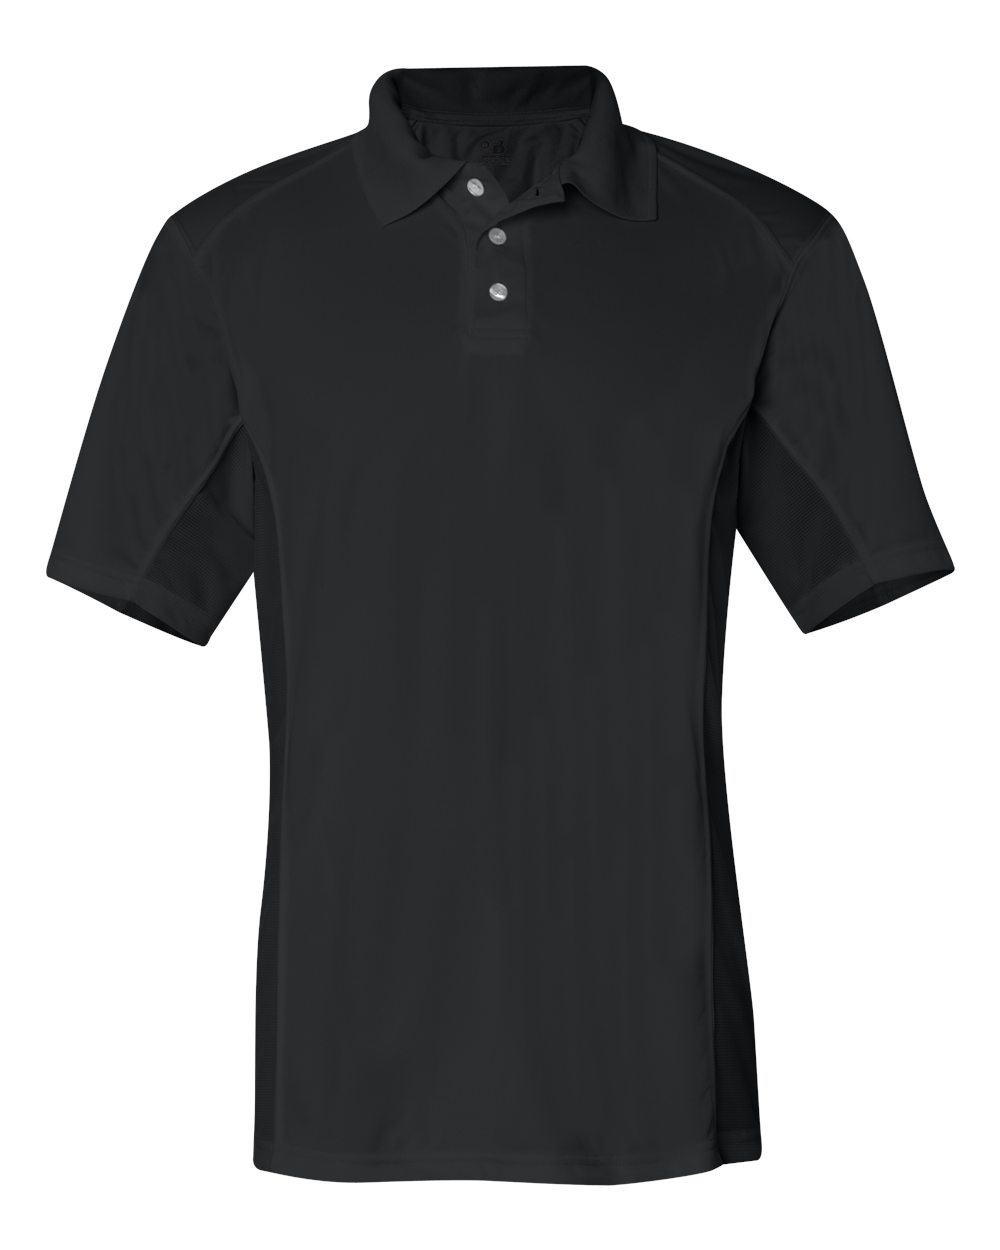 Badger 4440 Deluxe Unisex Wicking Polo Athletic Style